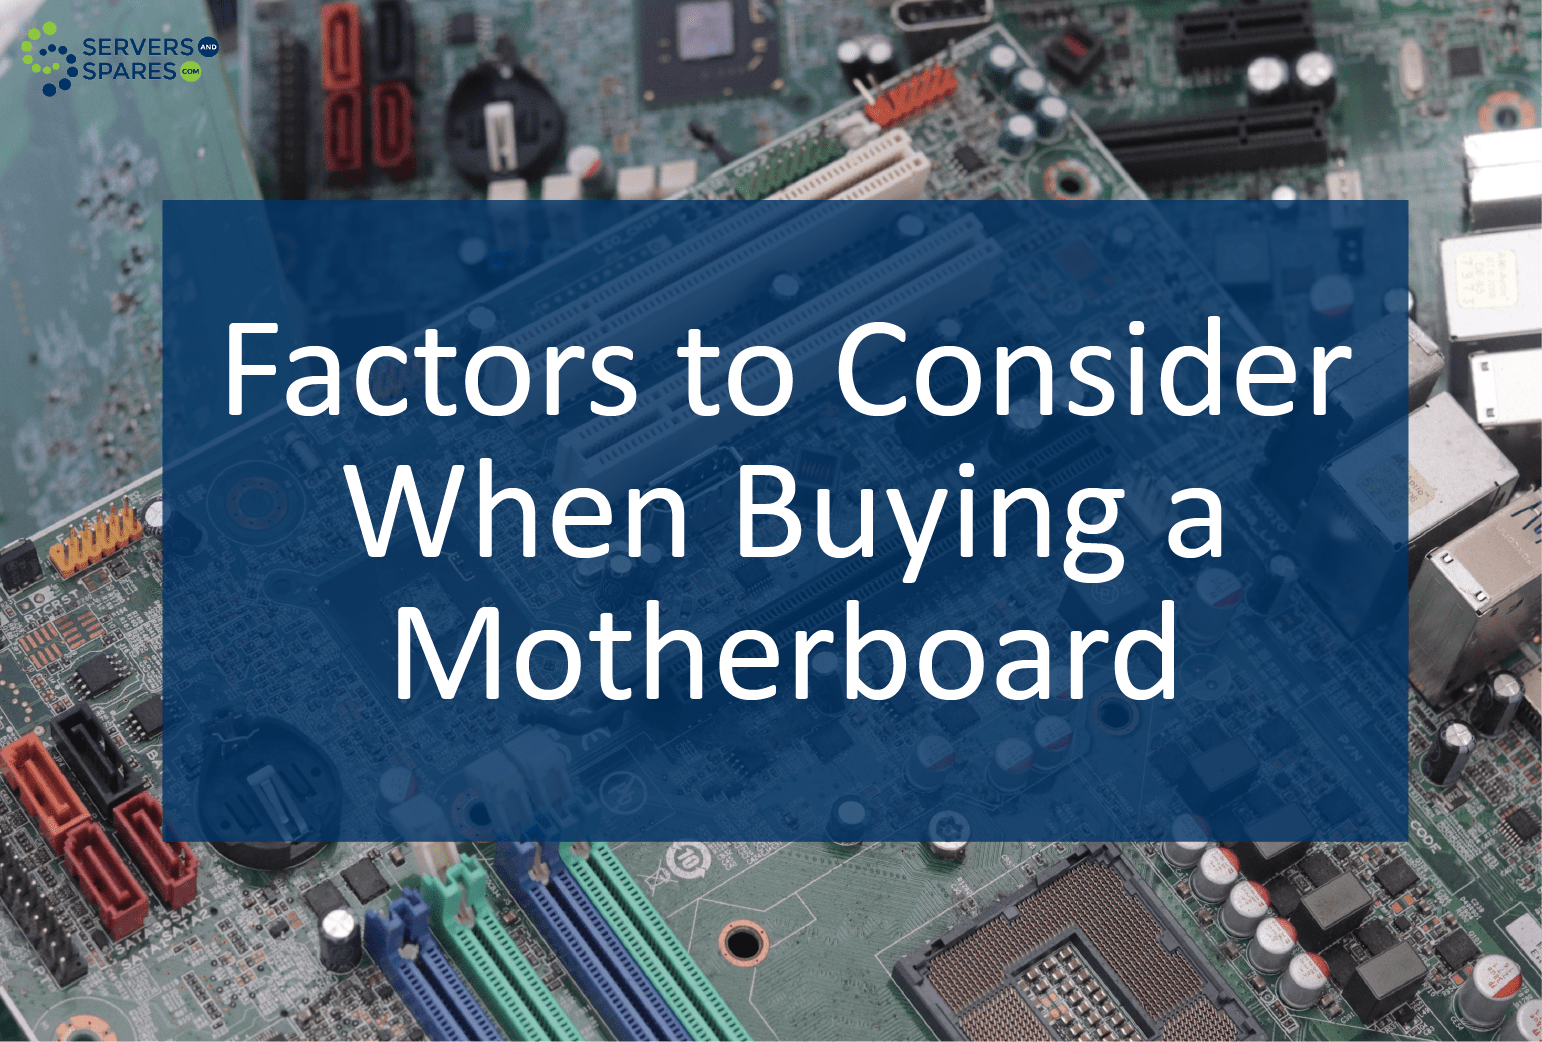 Factors to Consider When Buying a Motherboard